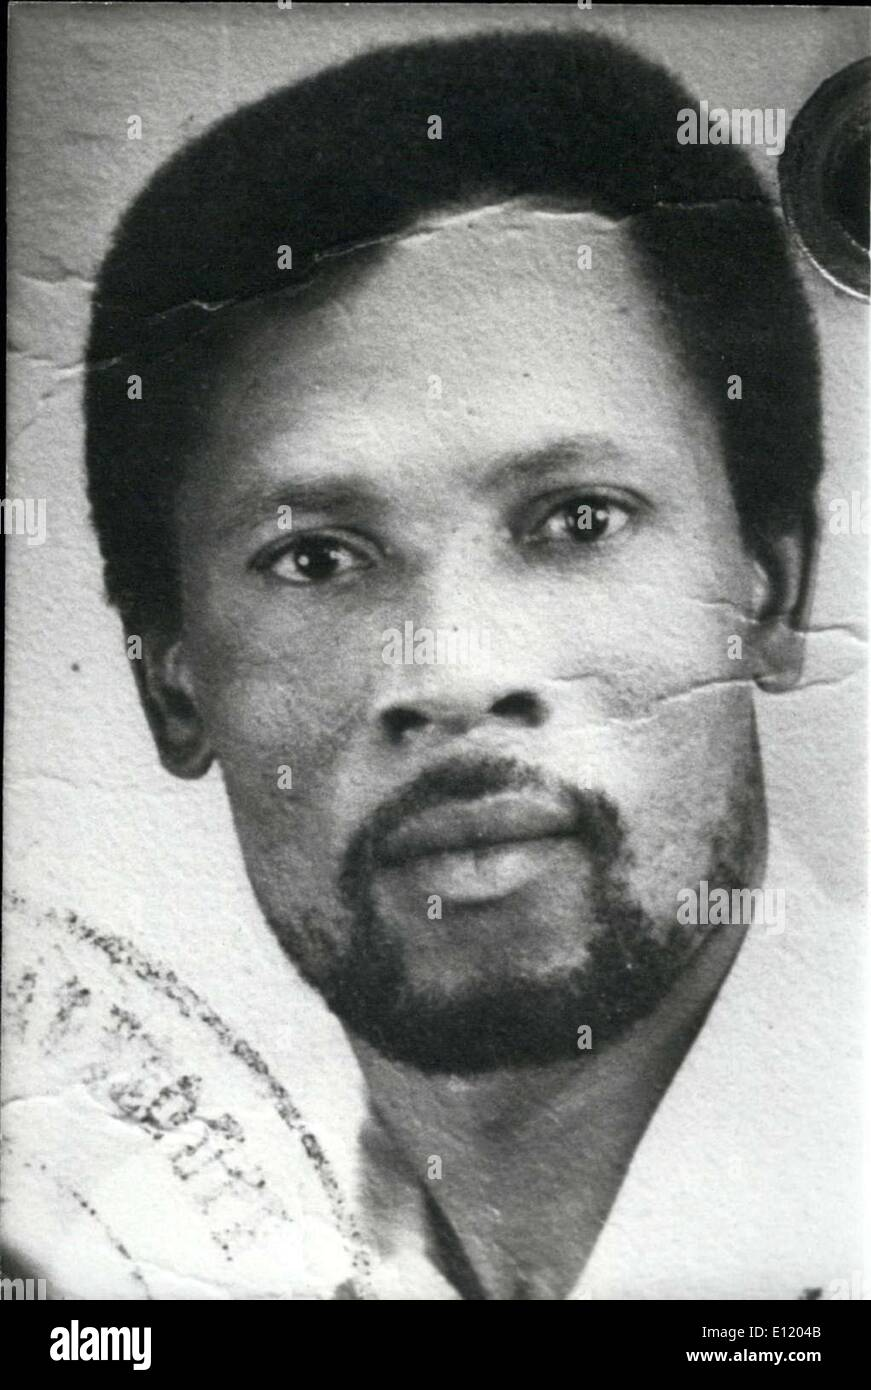 Apr. 23, 1981 - Martinique's Robert Reyal, 41, who had been the gardener of the victim, is one of two abductors arrested for Kluger's kidnapping. - Stock Image